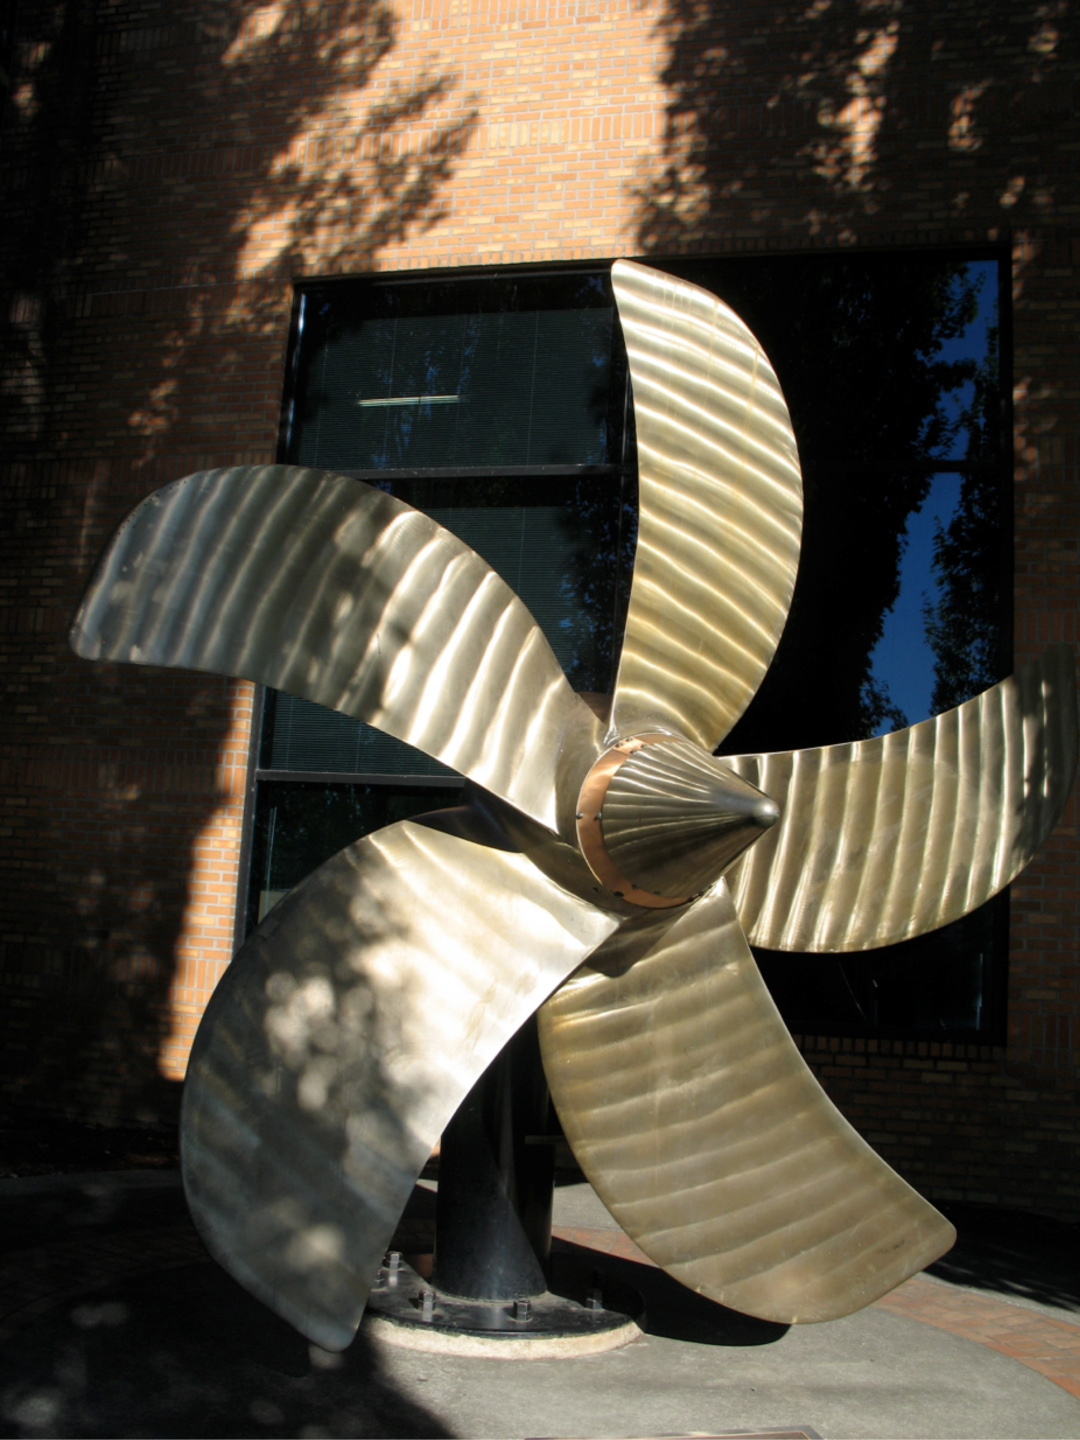 Propeller sculpture